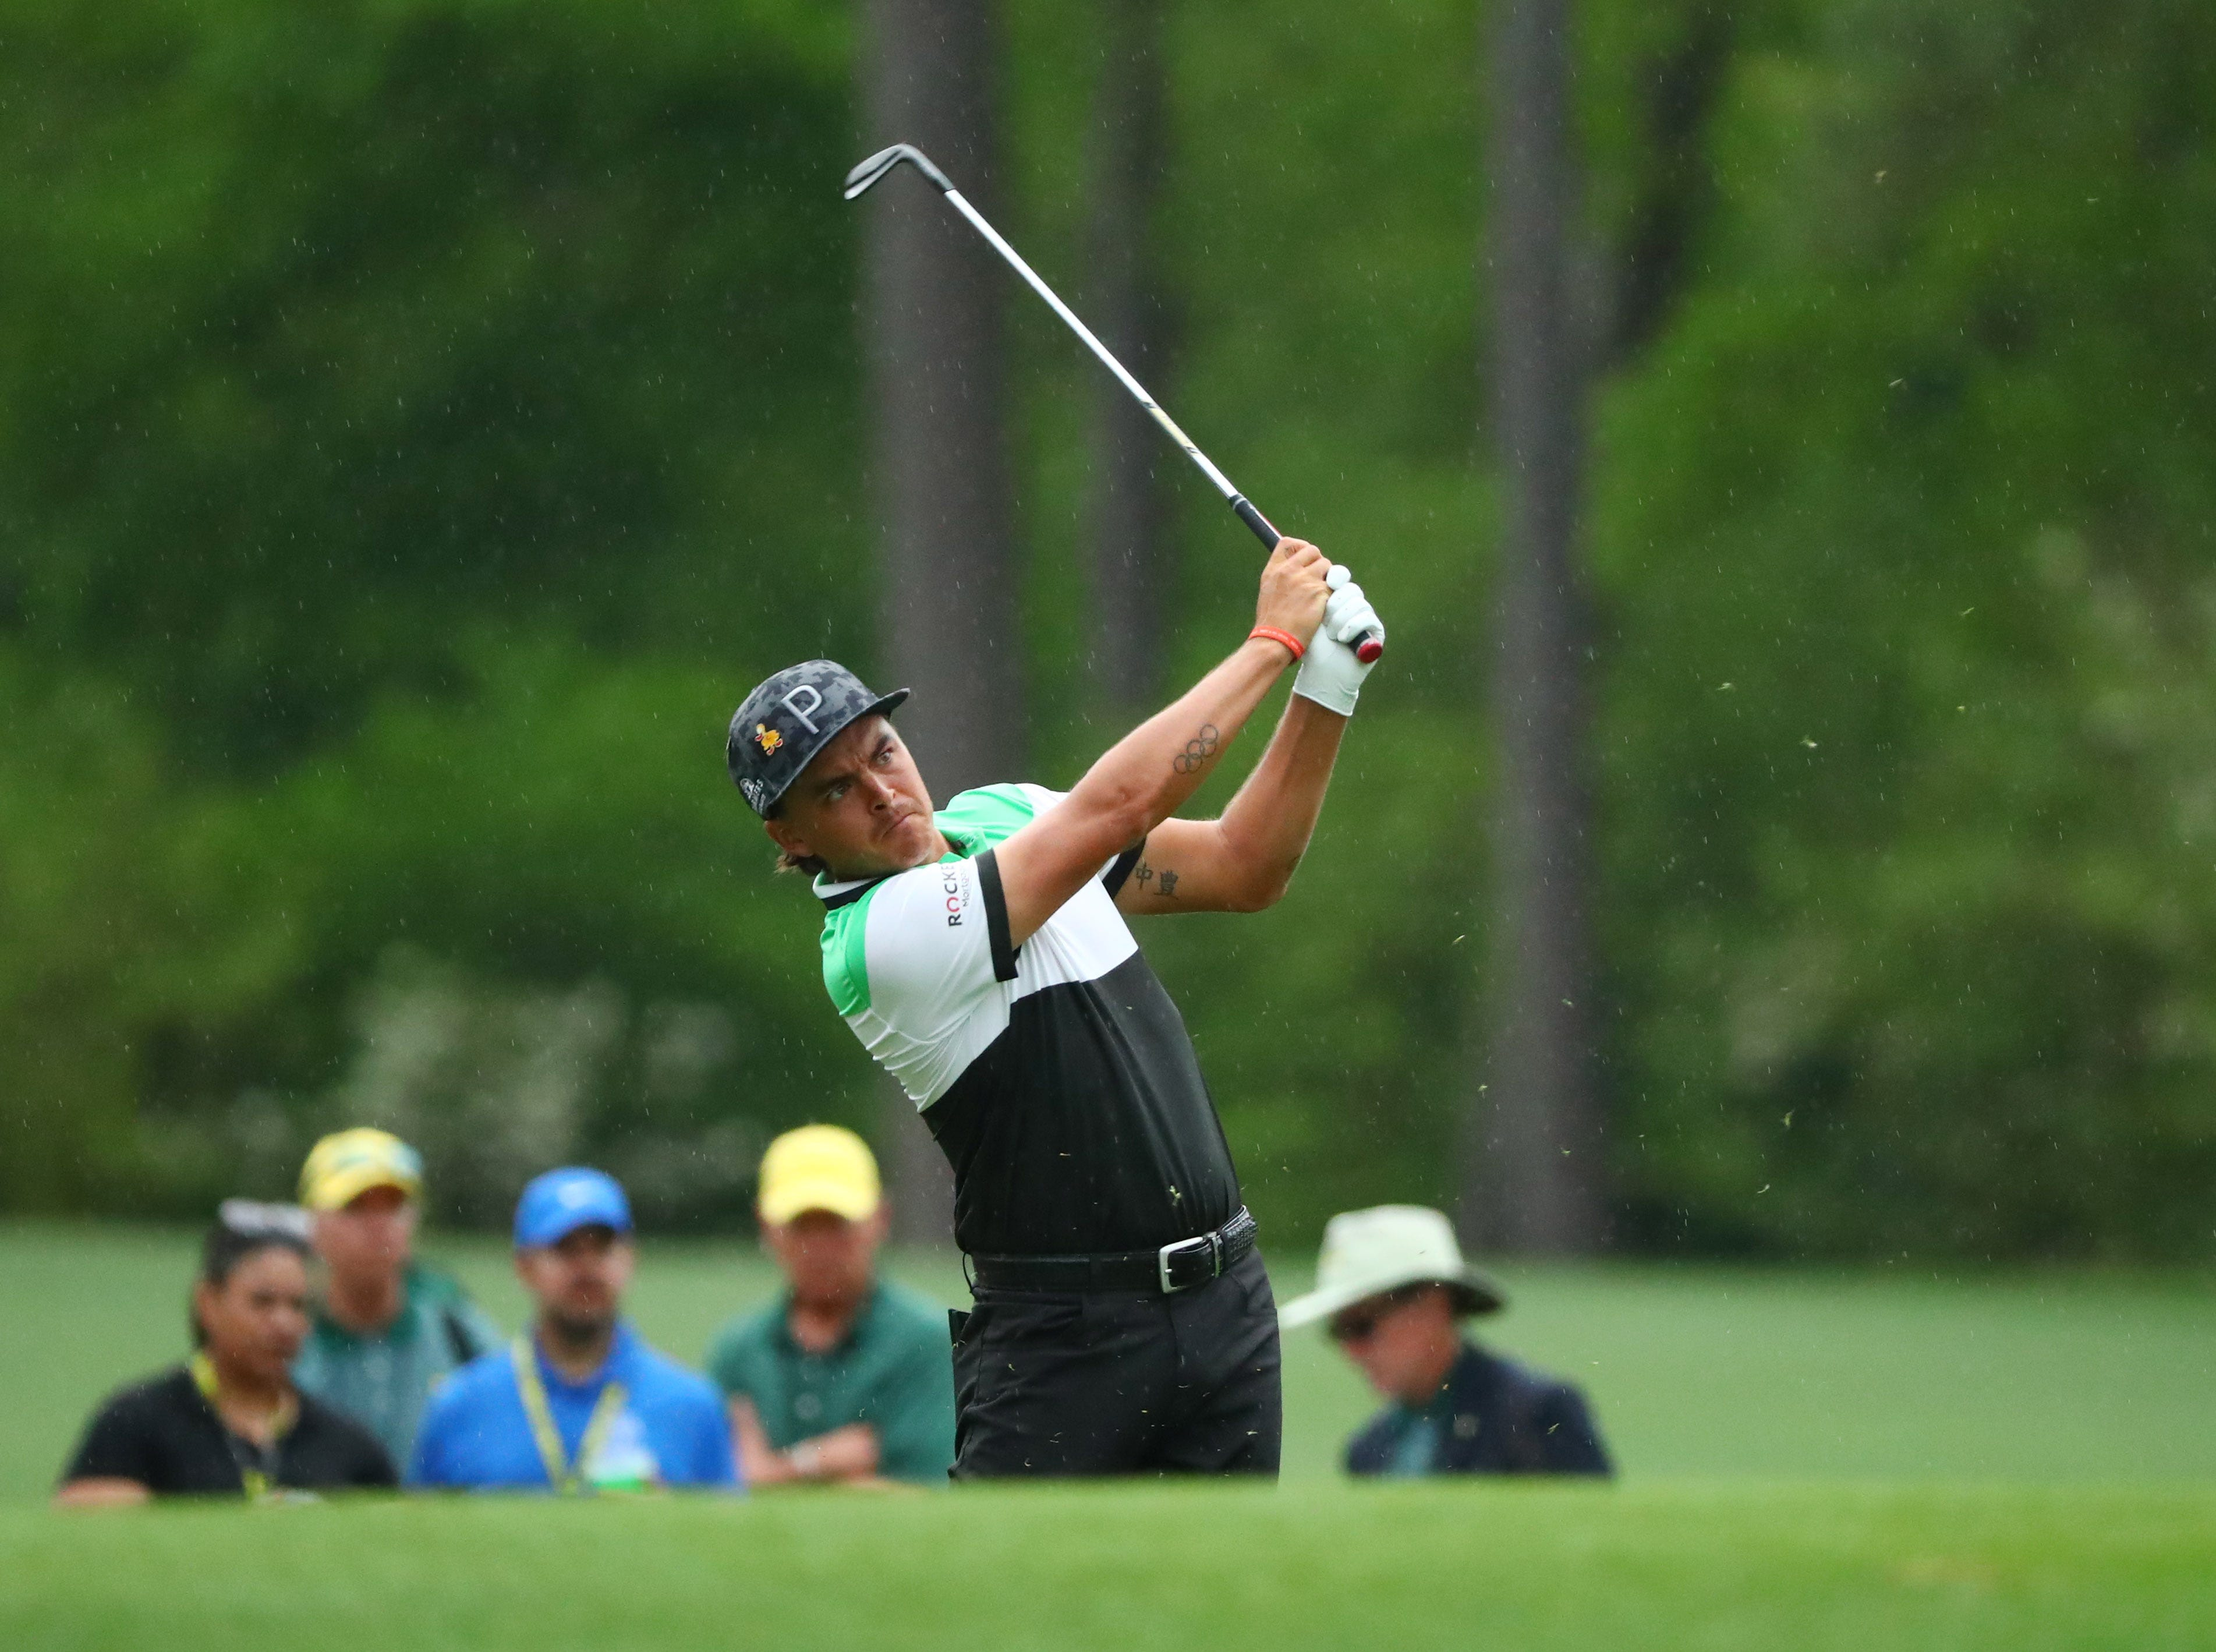 Apr 12, 2019; Augusta, GA, USA; Rickie Fowler hits his tee shot on the 12th hole during the second round of The Masters golf tournament at Augusta National Golf Club. Mandatory Credit: Rob Schumacher-USA TODAY Sports